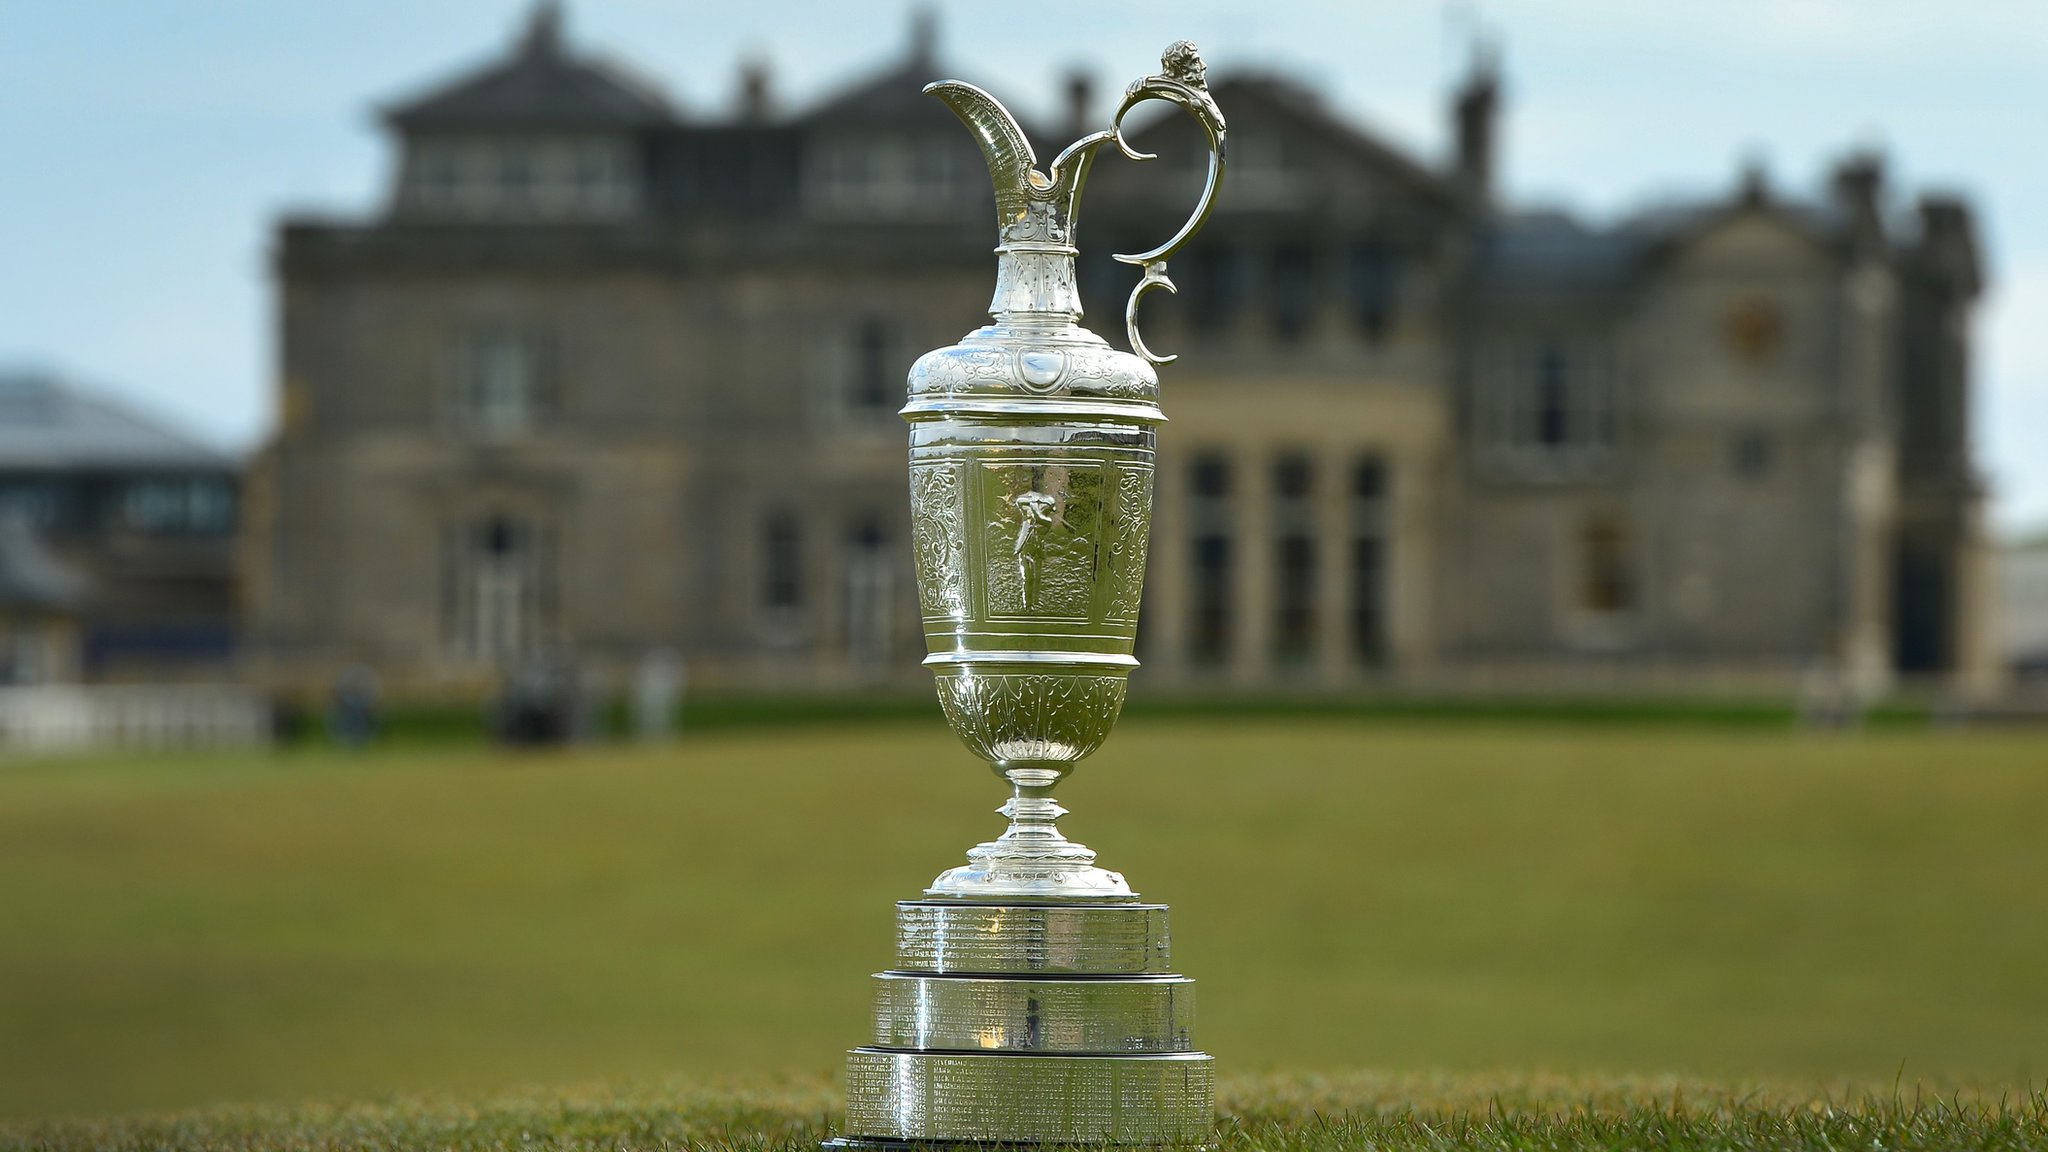 St Andrews: Scottish course to host 150th Open in 2021